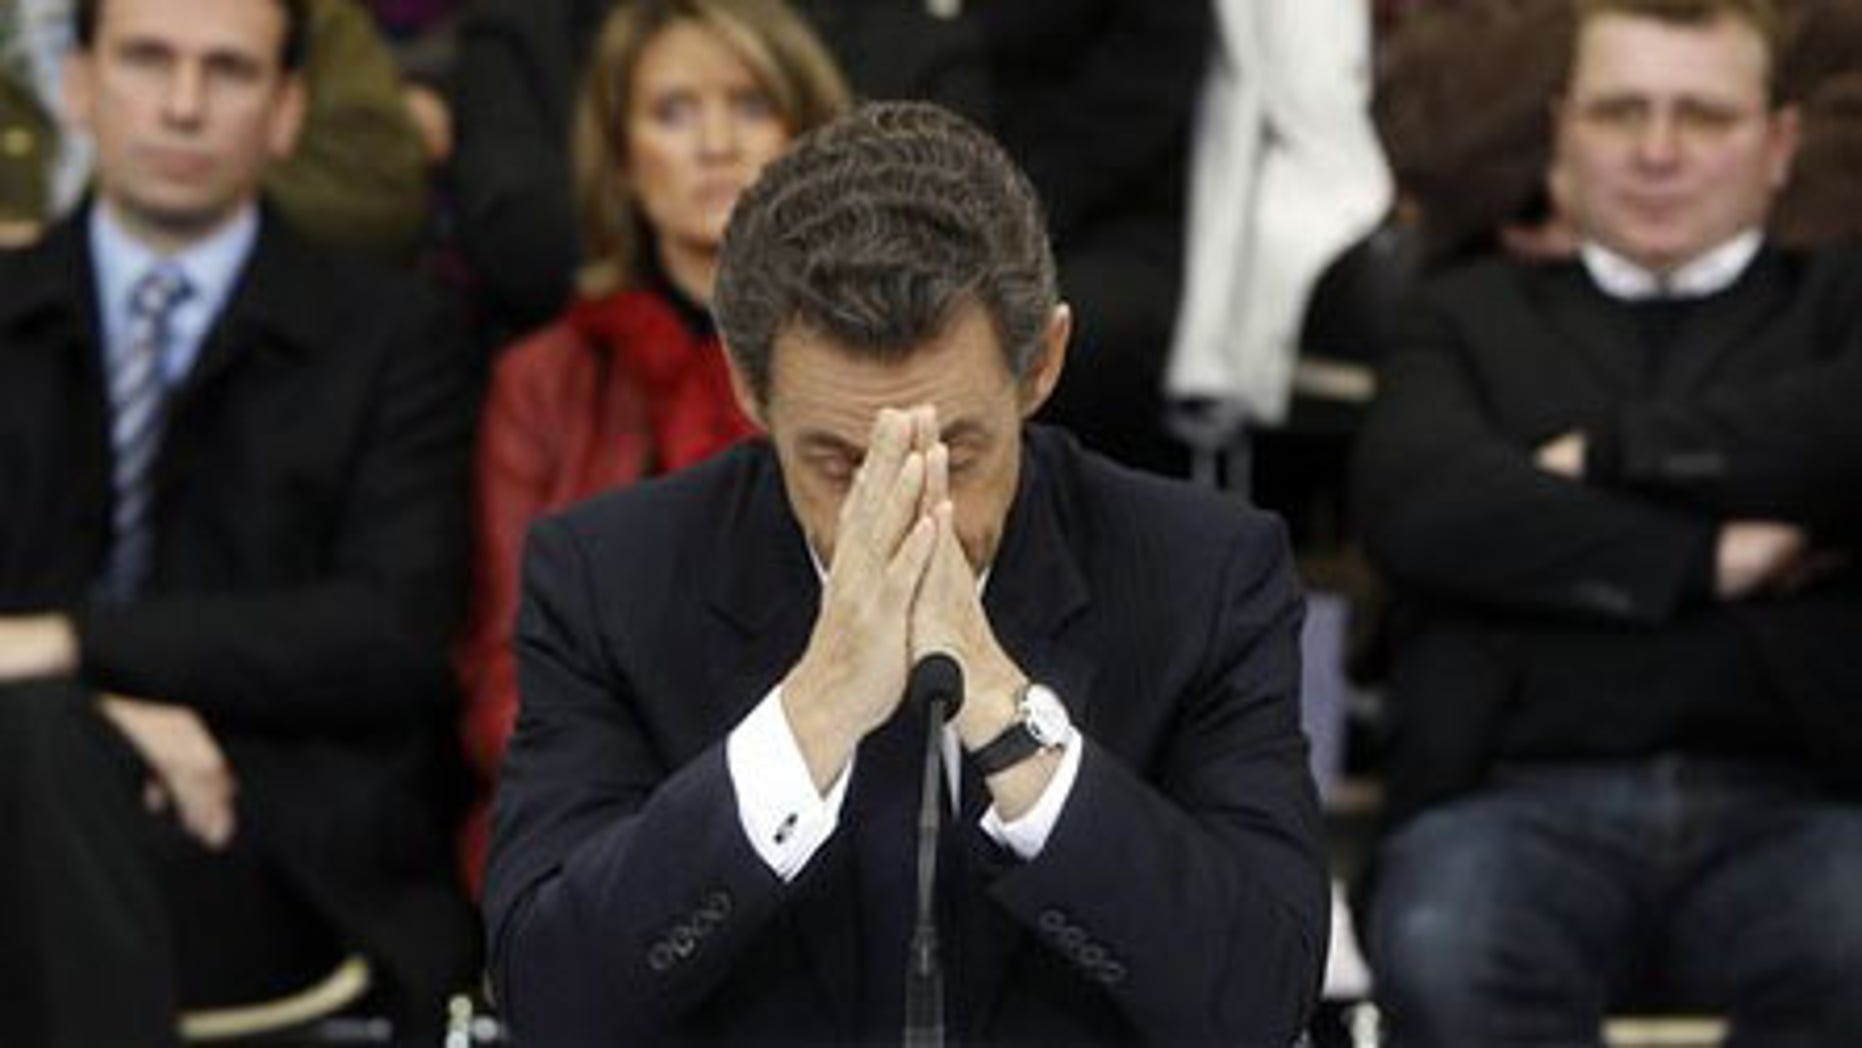 French President Nicolas Sarkozy reacts during a meeting on agriculture, in  Mayet-de-Montagne, central France, Thursday Nov. 25, 2010. (AP Photo/Laurent Cipriani)